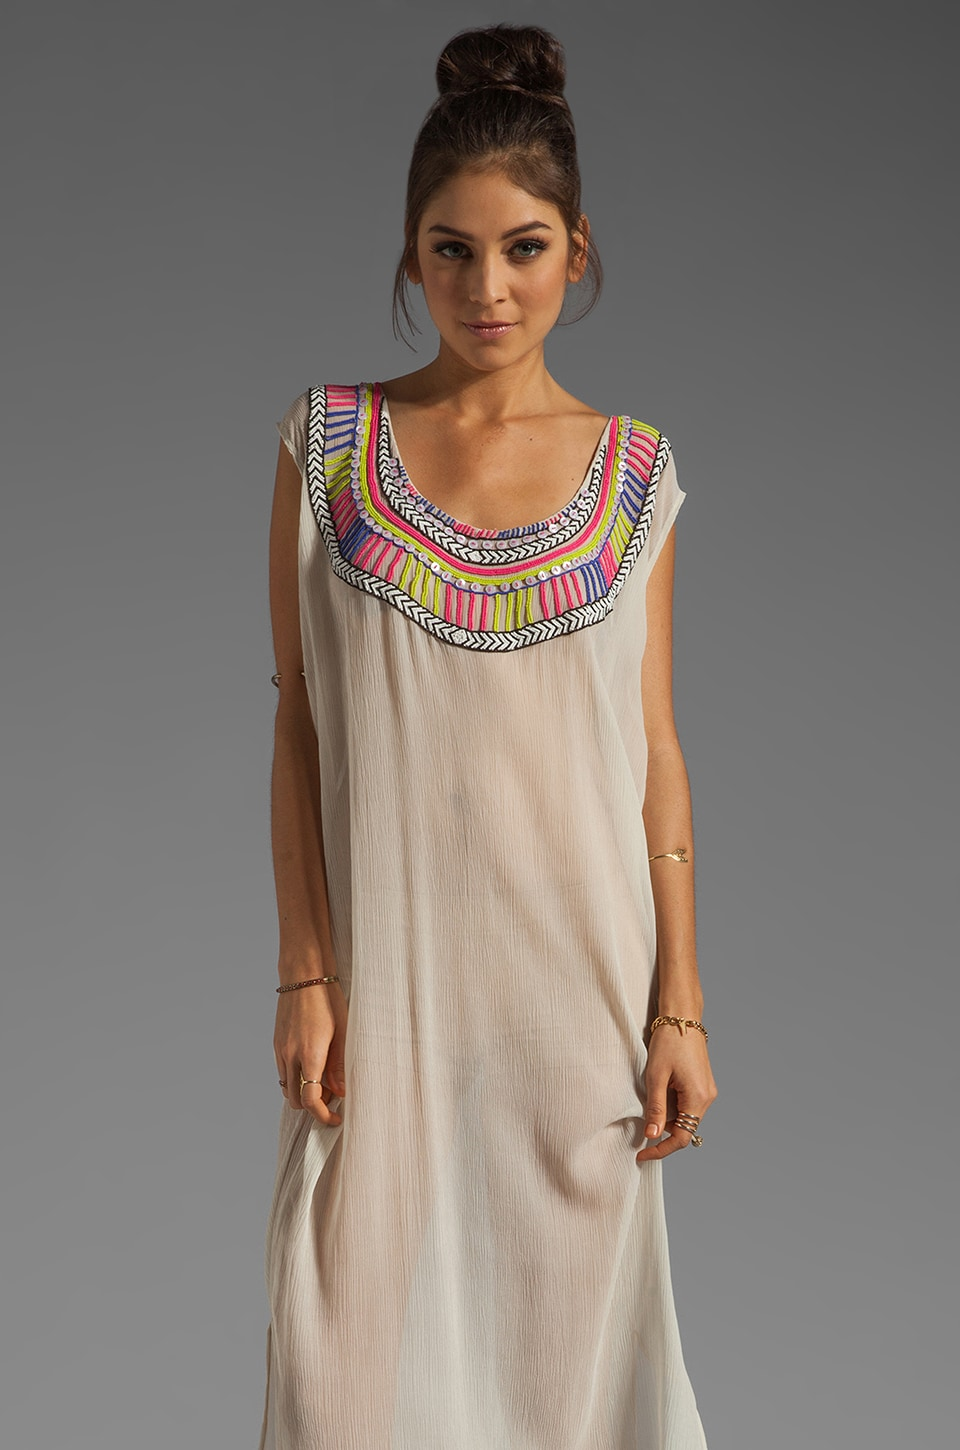 Mara Hoffman Beaded Chiffon Dashiki Maxi Dress in Sand